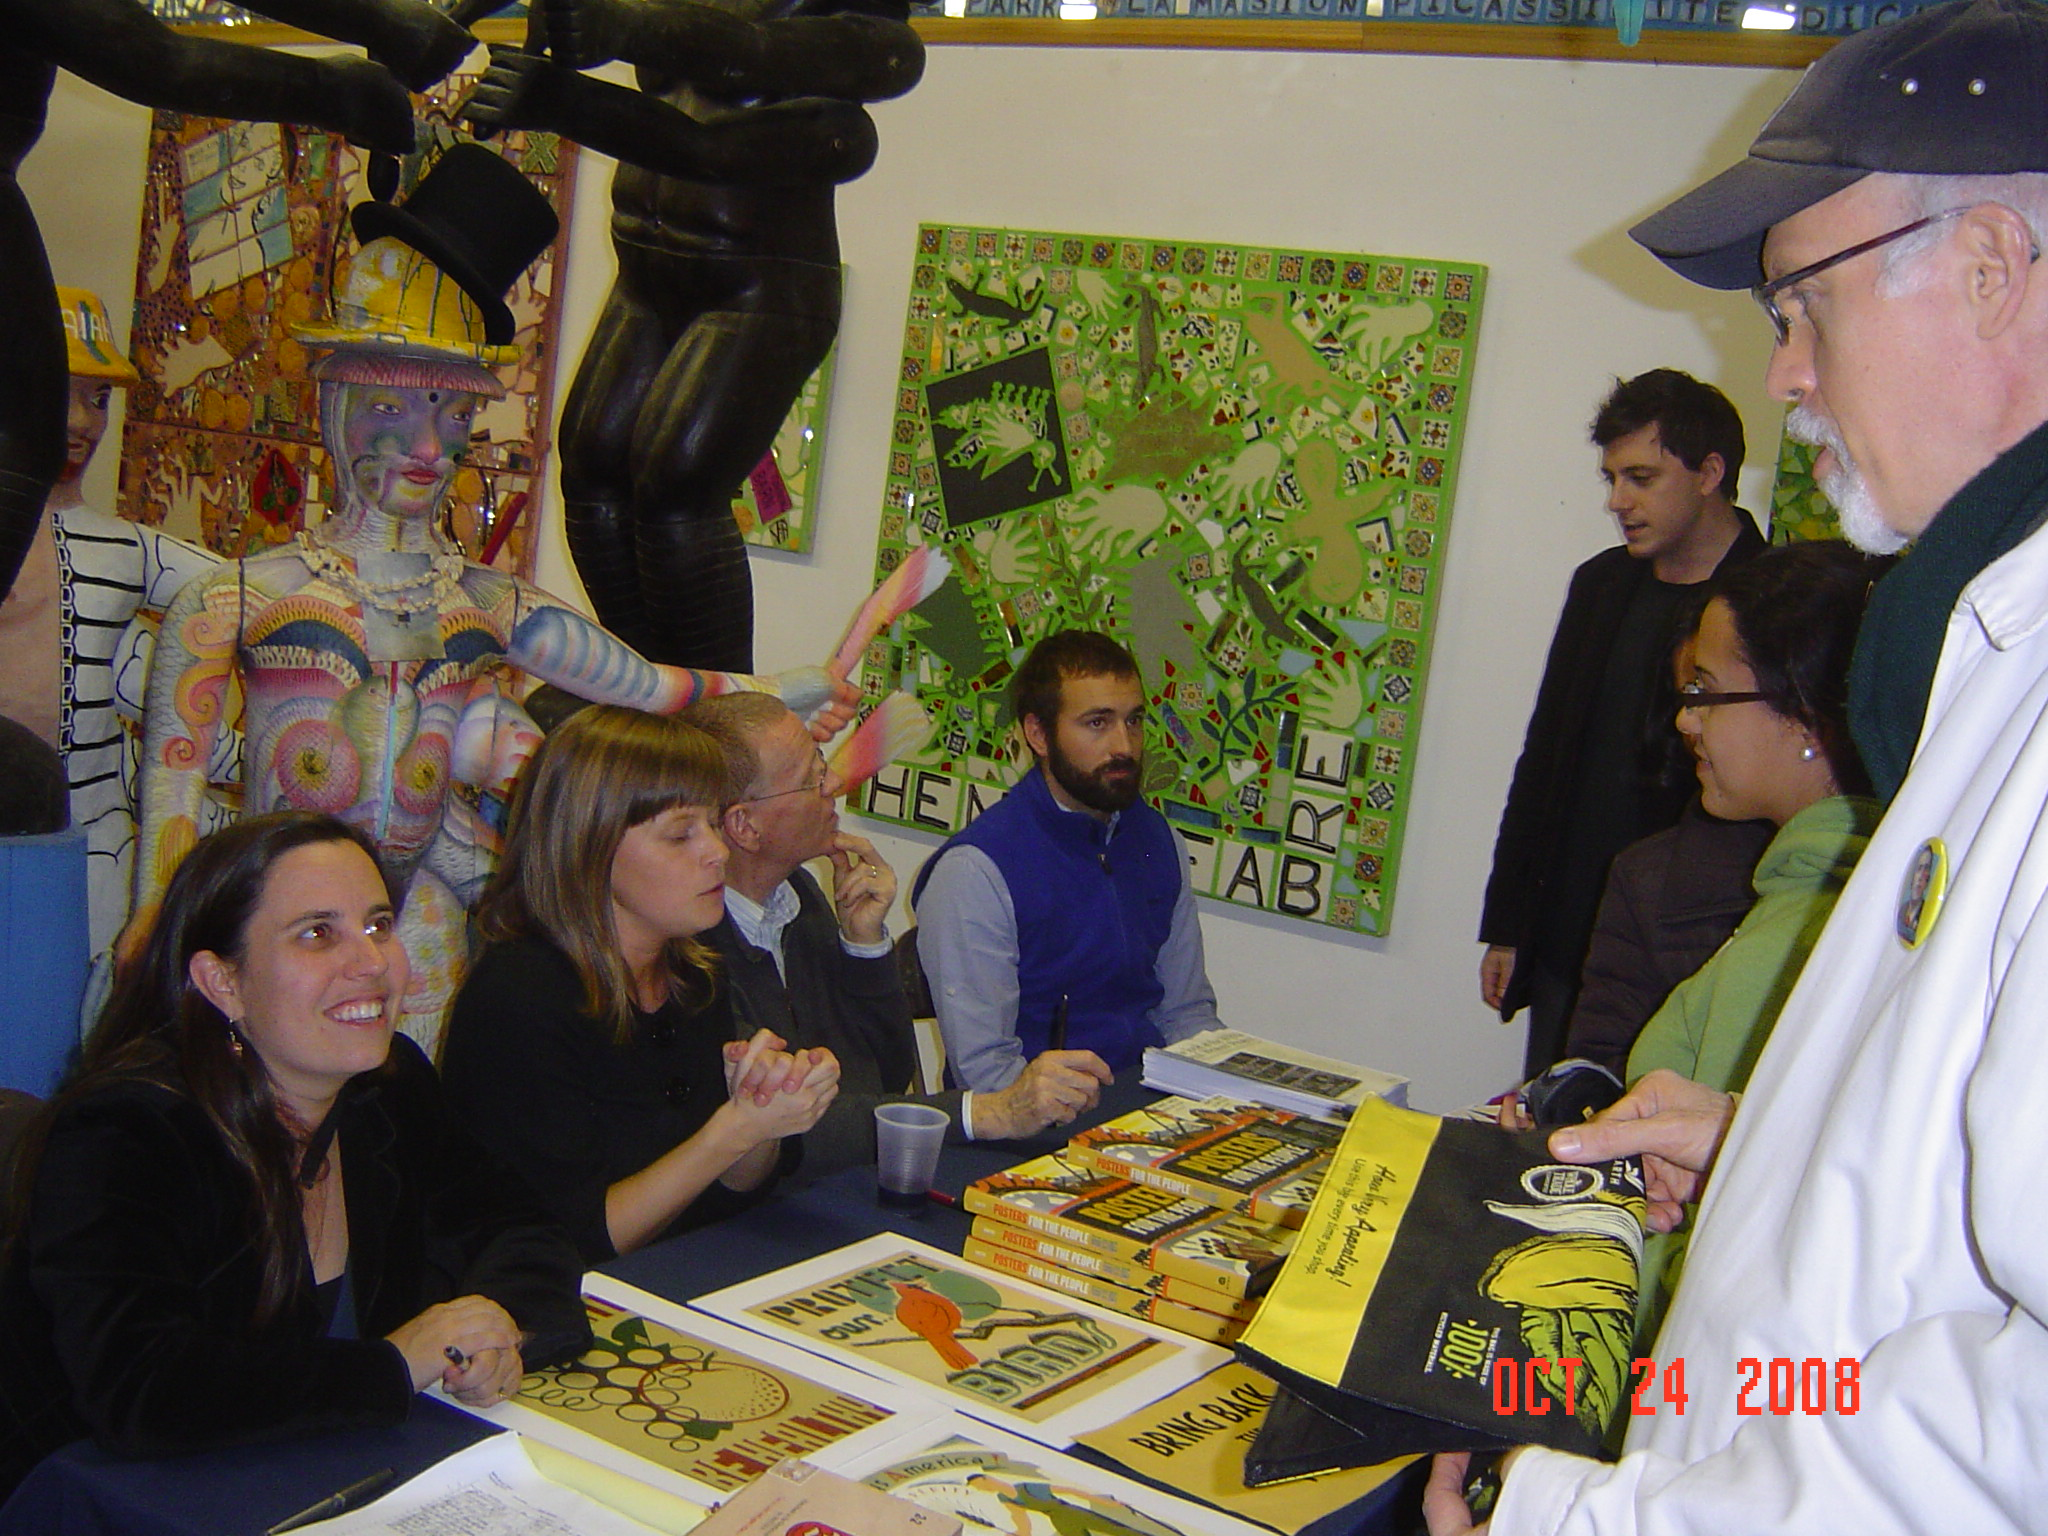 2008  Posters for the People  Book Launch. From left to right: Ennis Carter, Cara Cox, Chris DeNoon & Alex Peltz